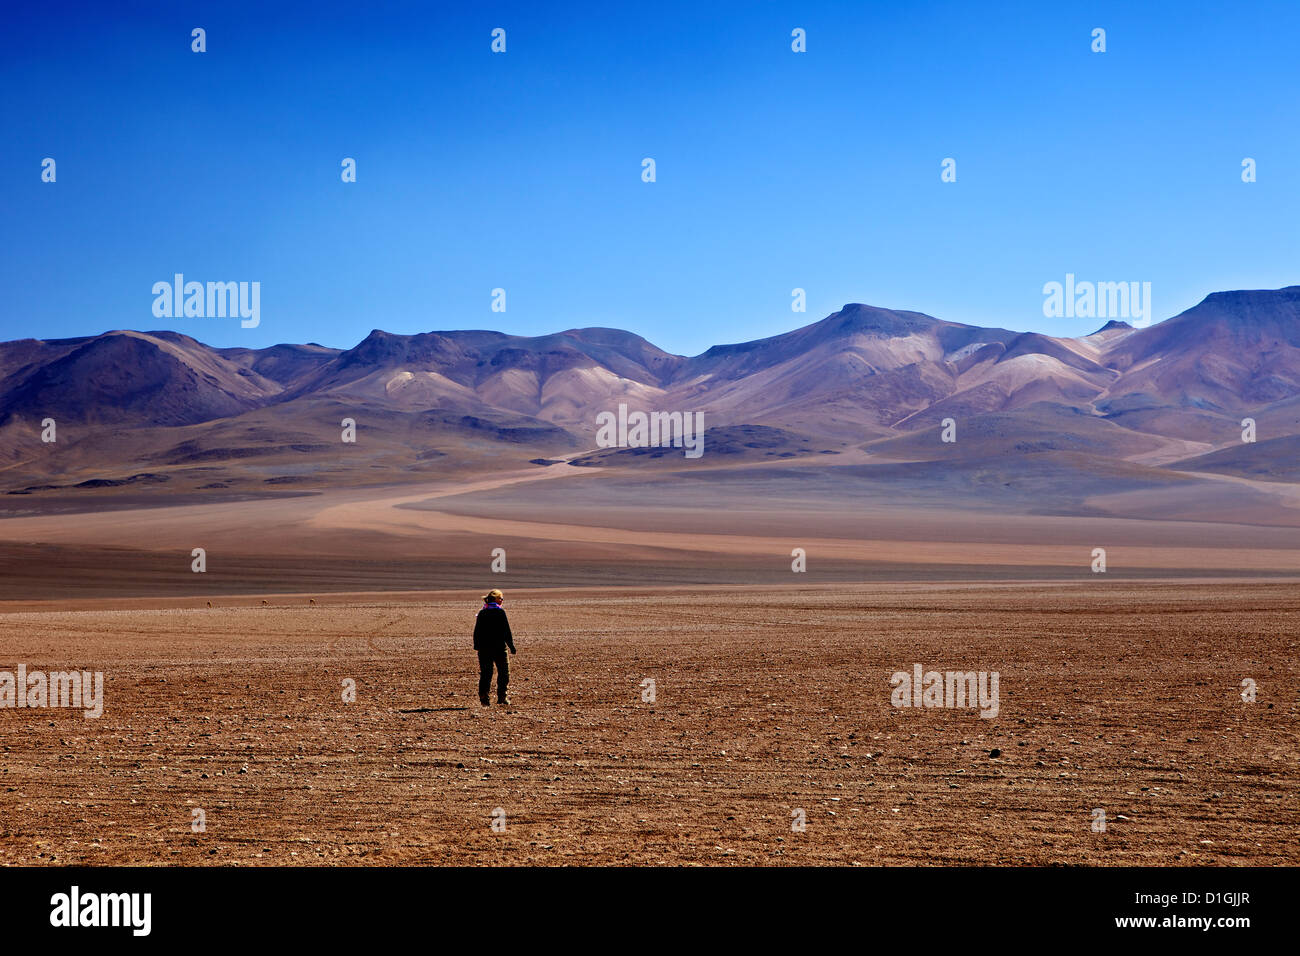 Desert in the Avaroa Andean Fauna National Reserve, Bolivia, South America - Stock Image